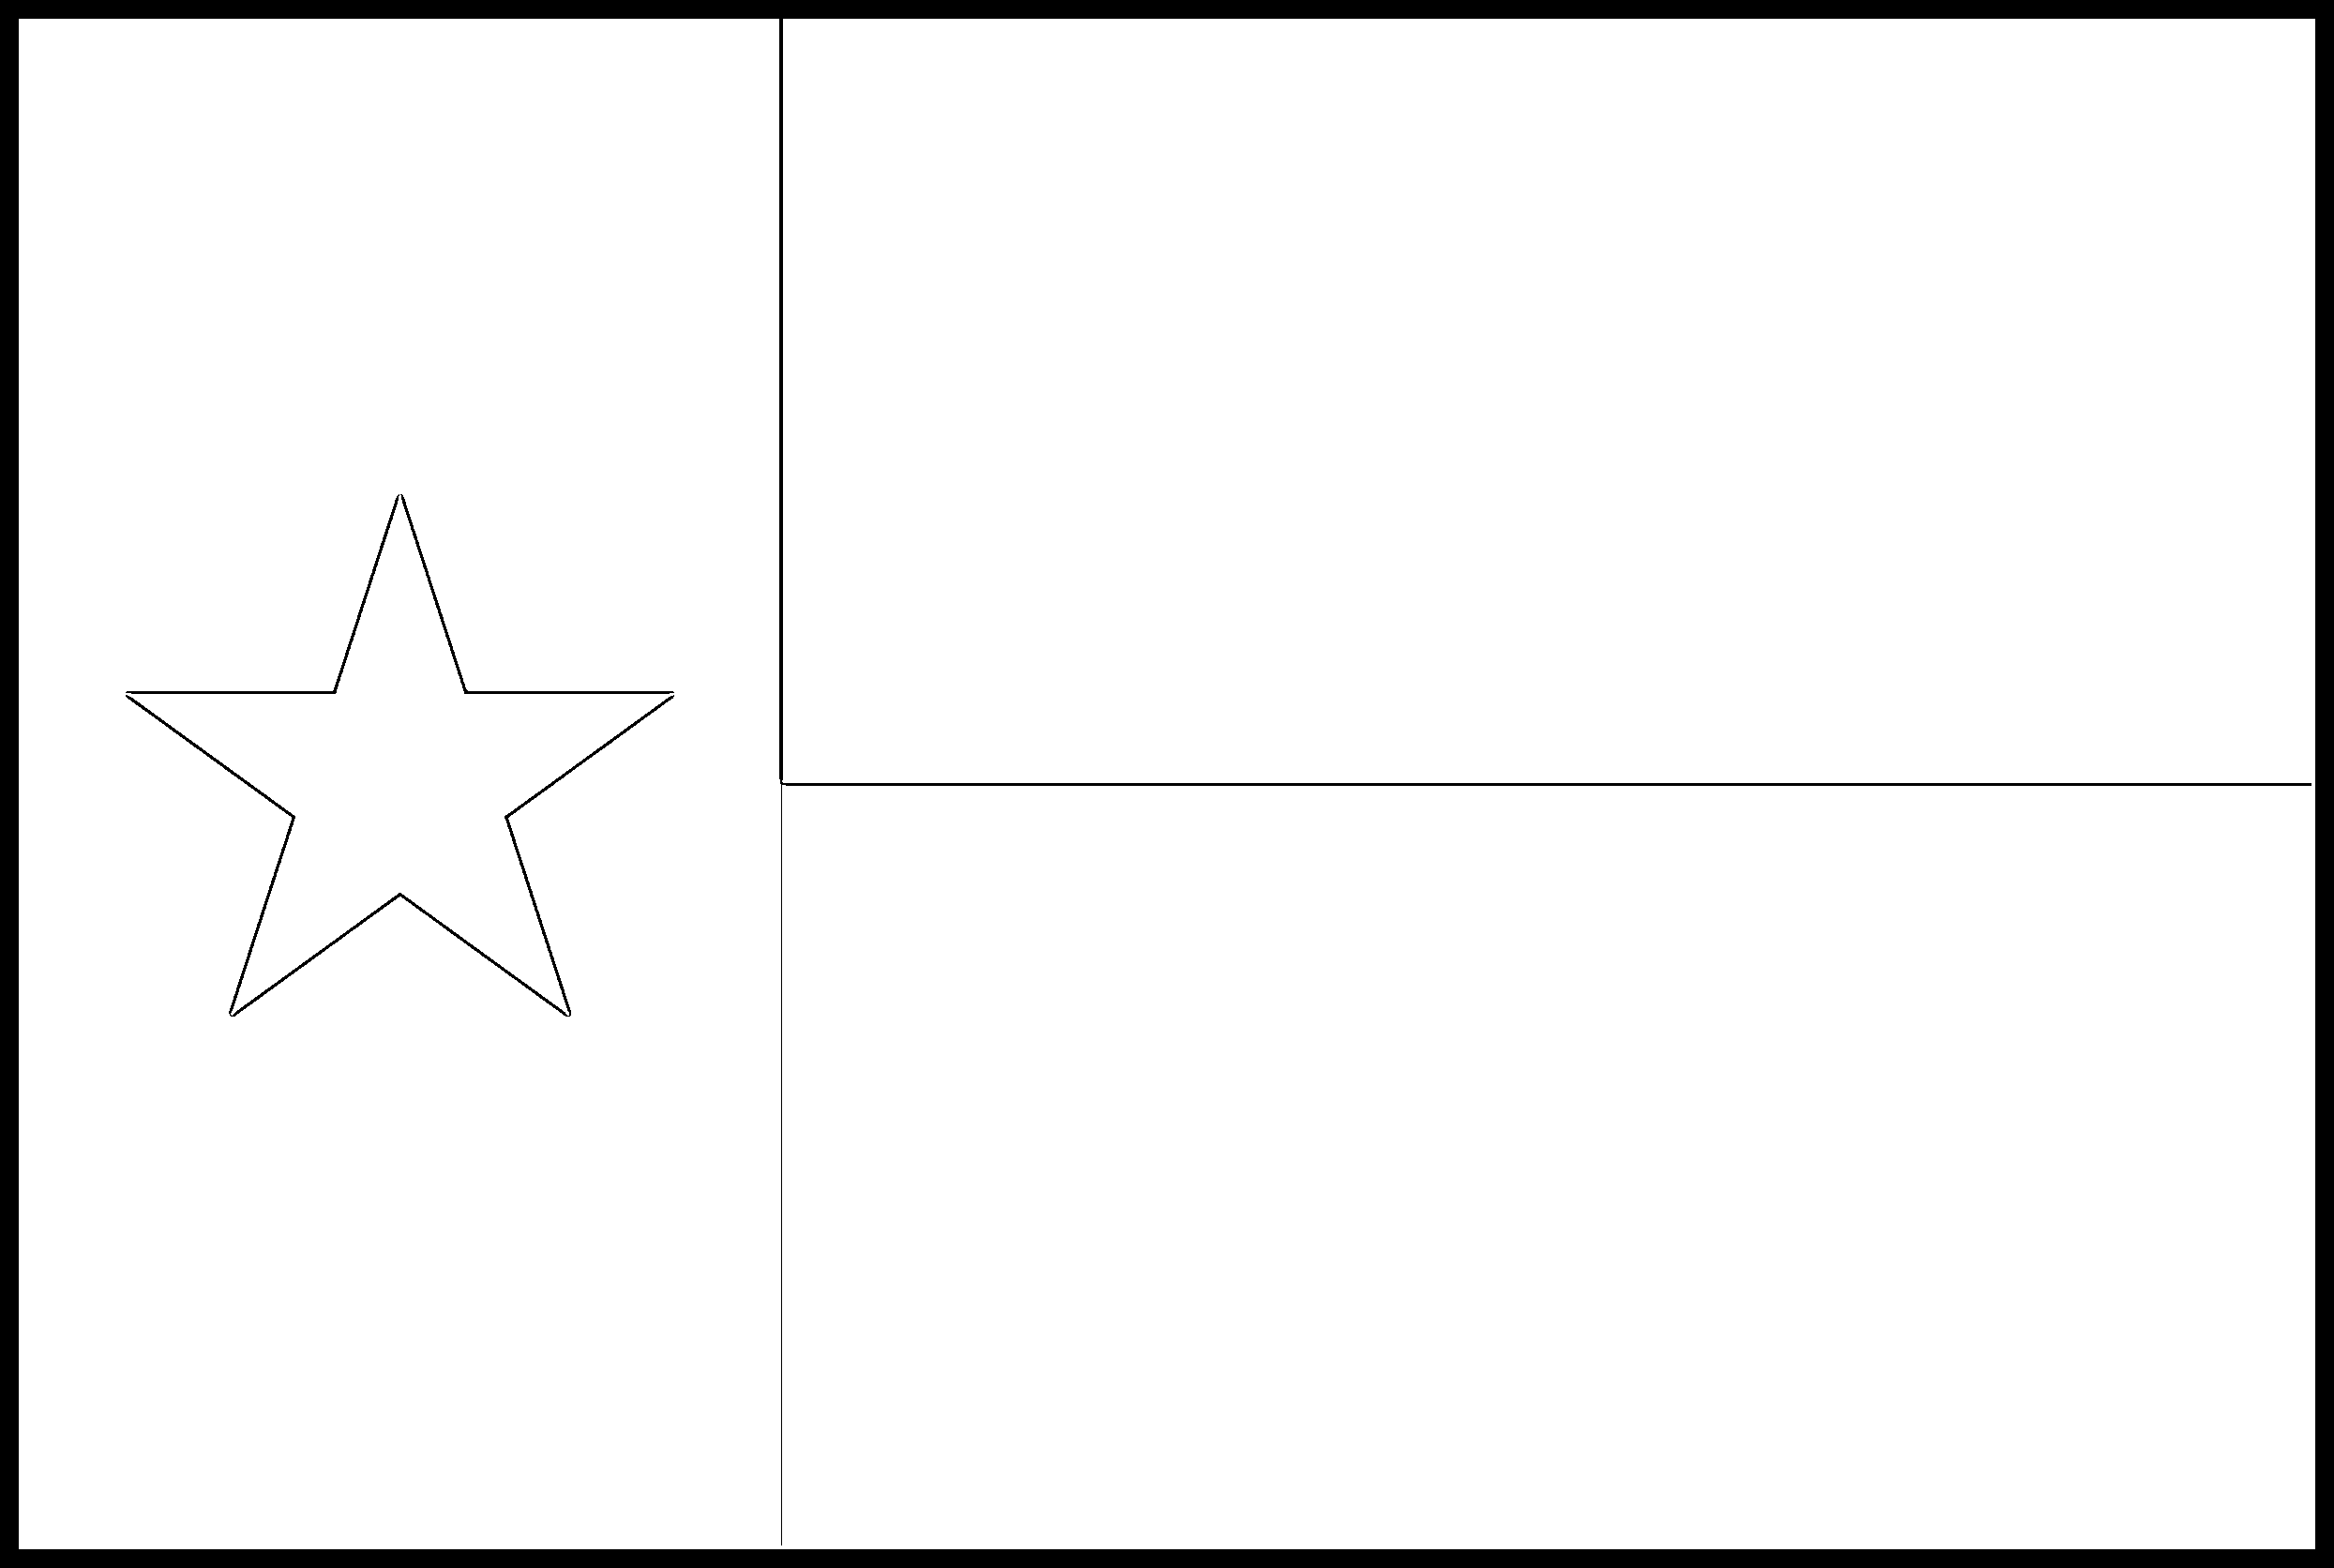 texas flag coloring sheet texas flag coloring page state flag drawing flags web texas coloring sheet flag